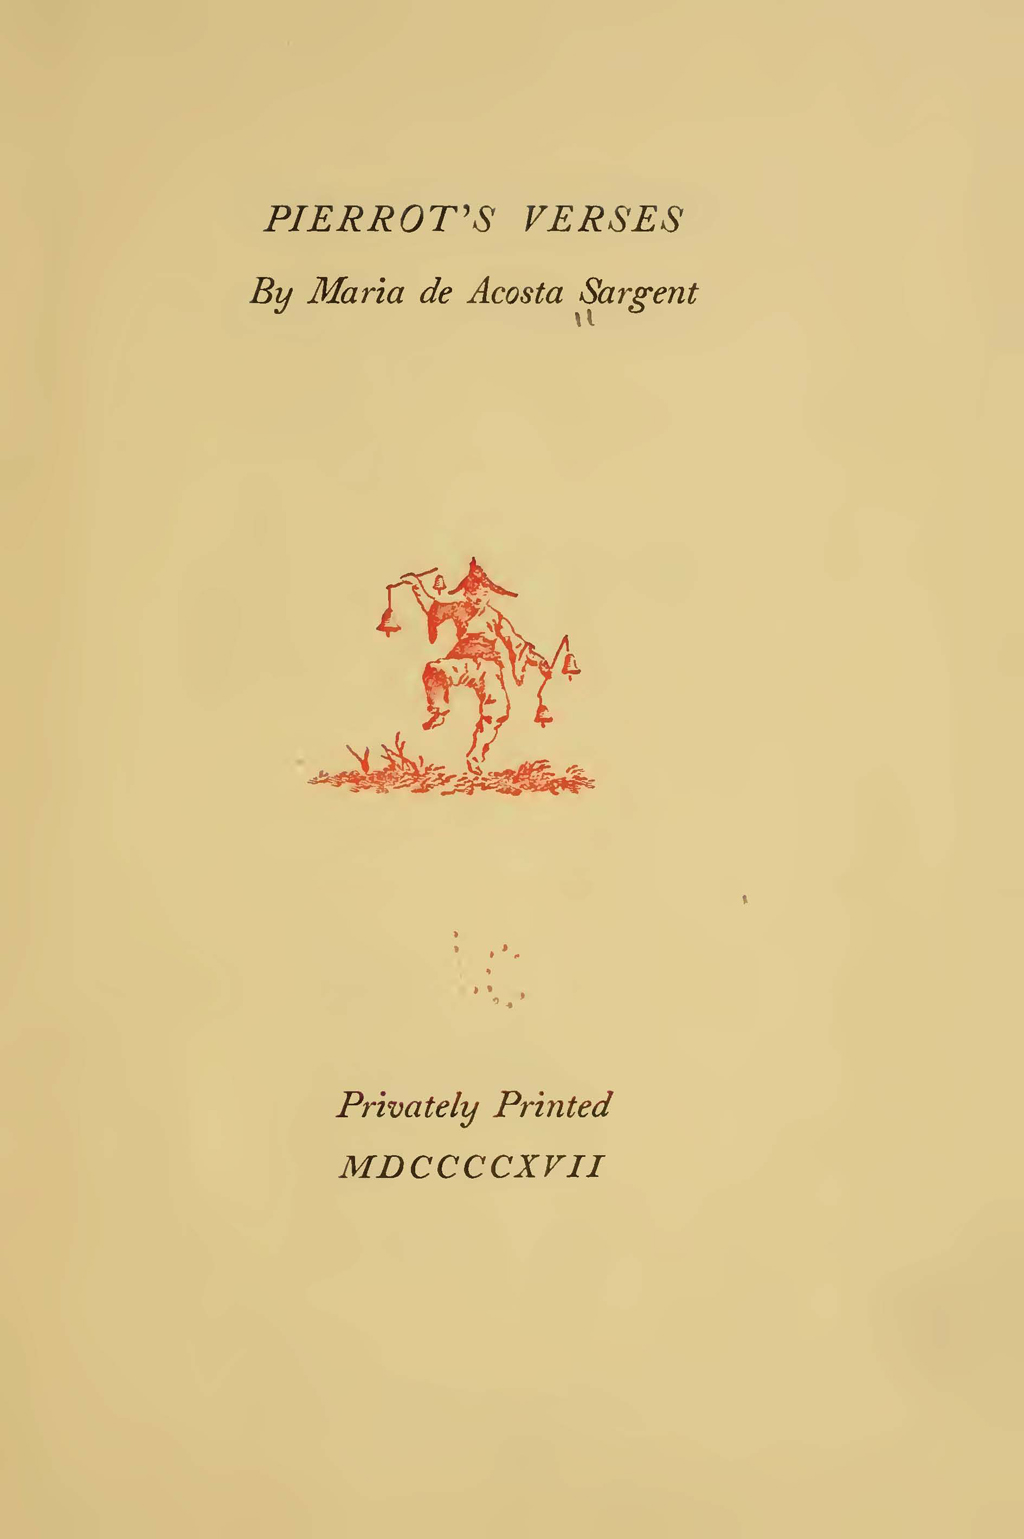 Title page of Pierrot's Verses by Maria de Acosta Sargent (Privately printed, 1917).